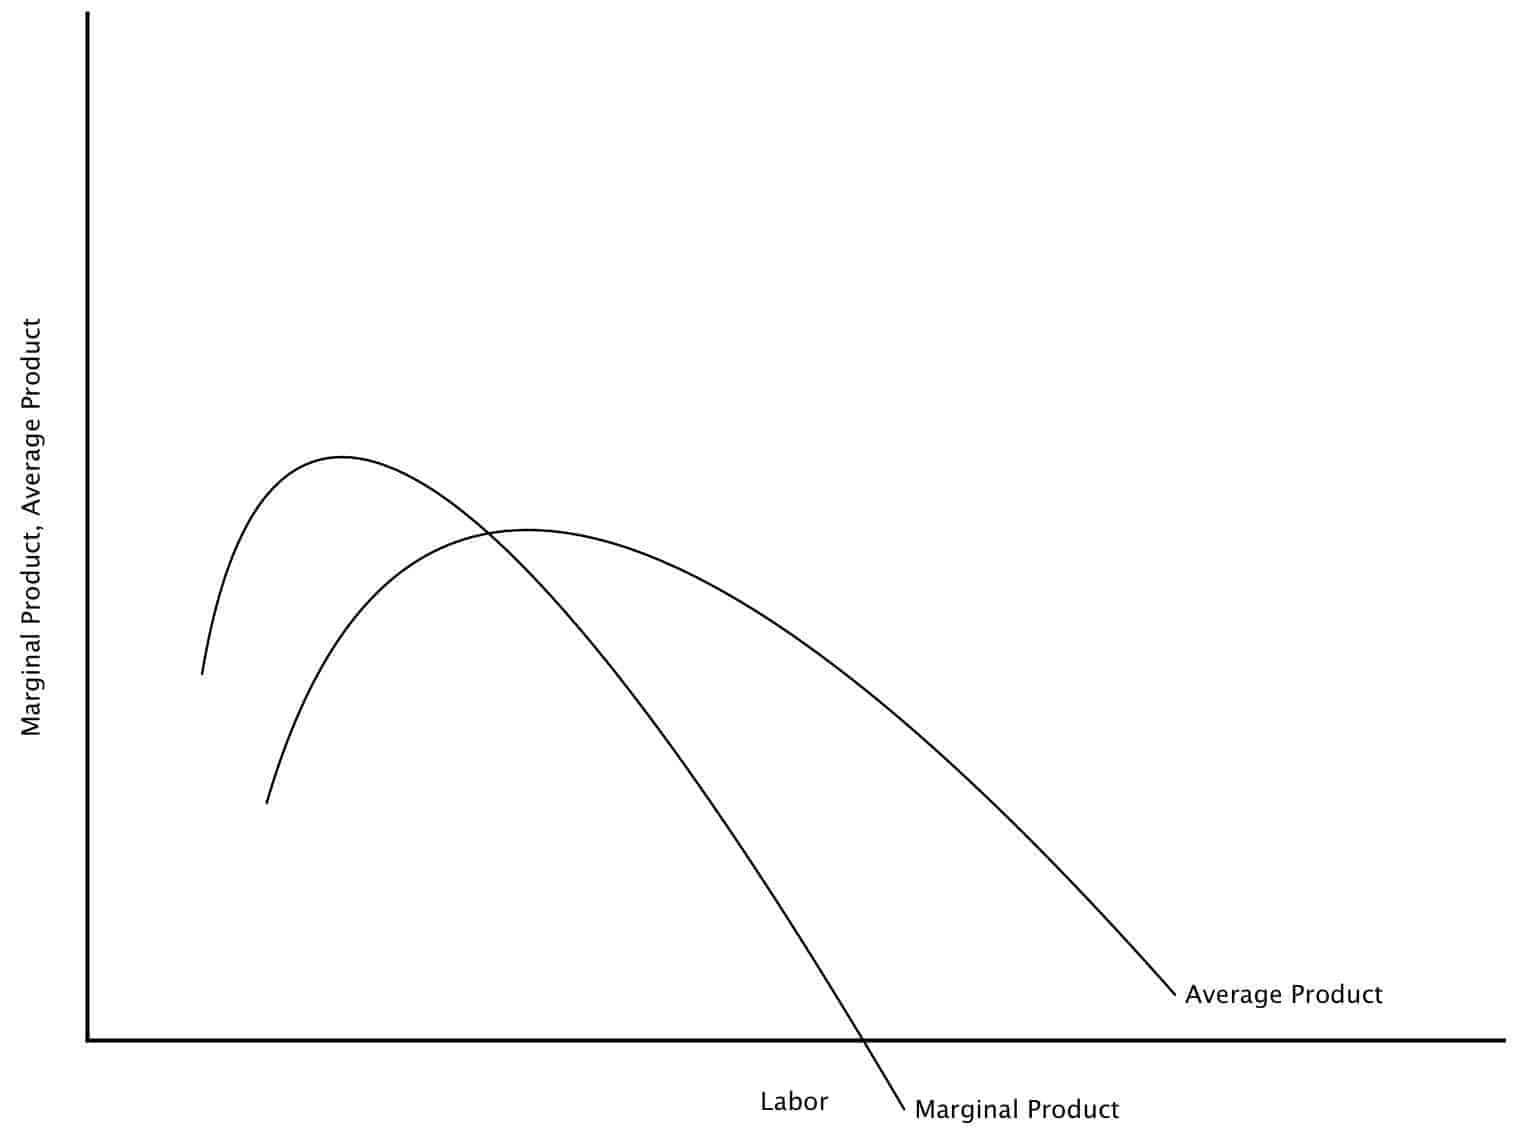 Marginal Product, Average Product curves